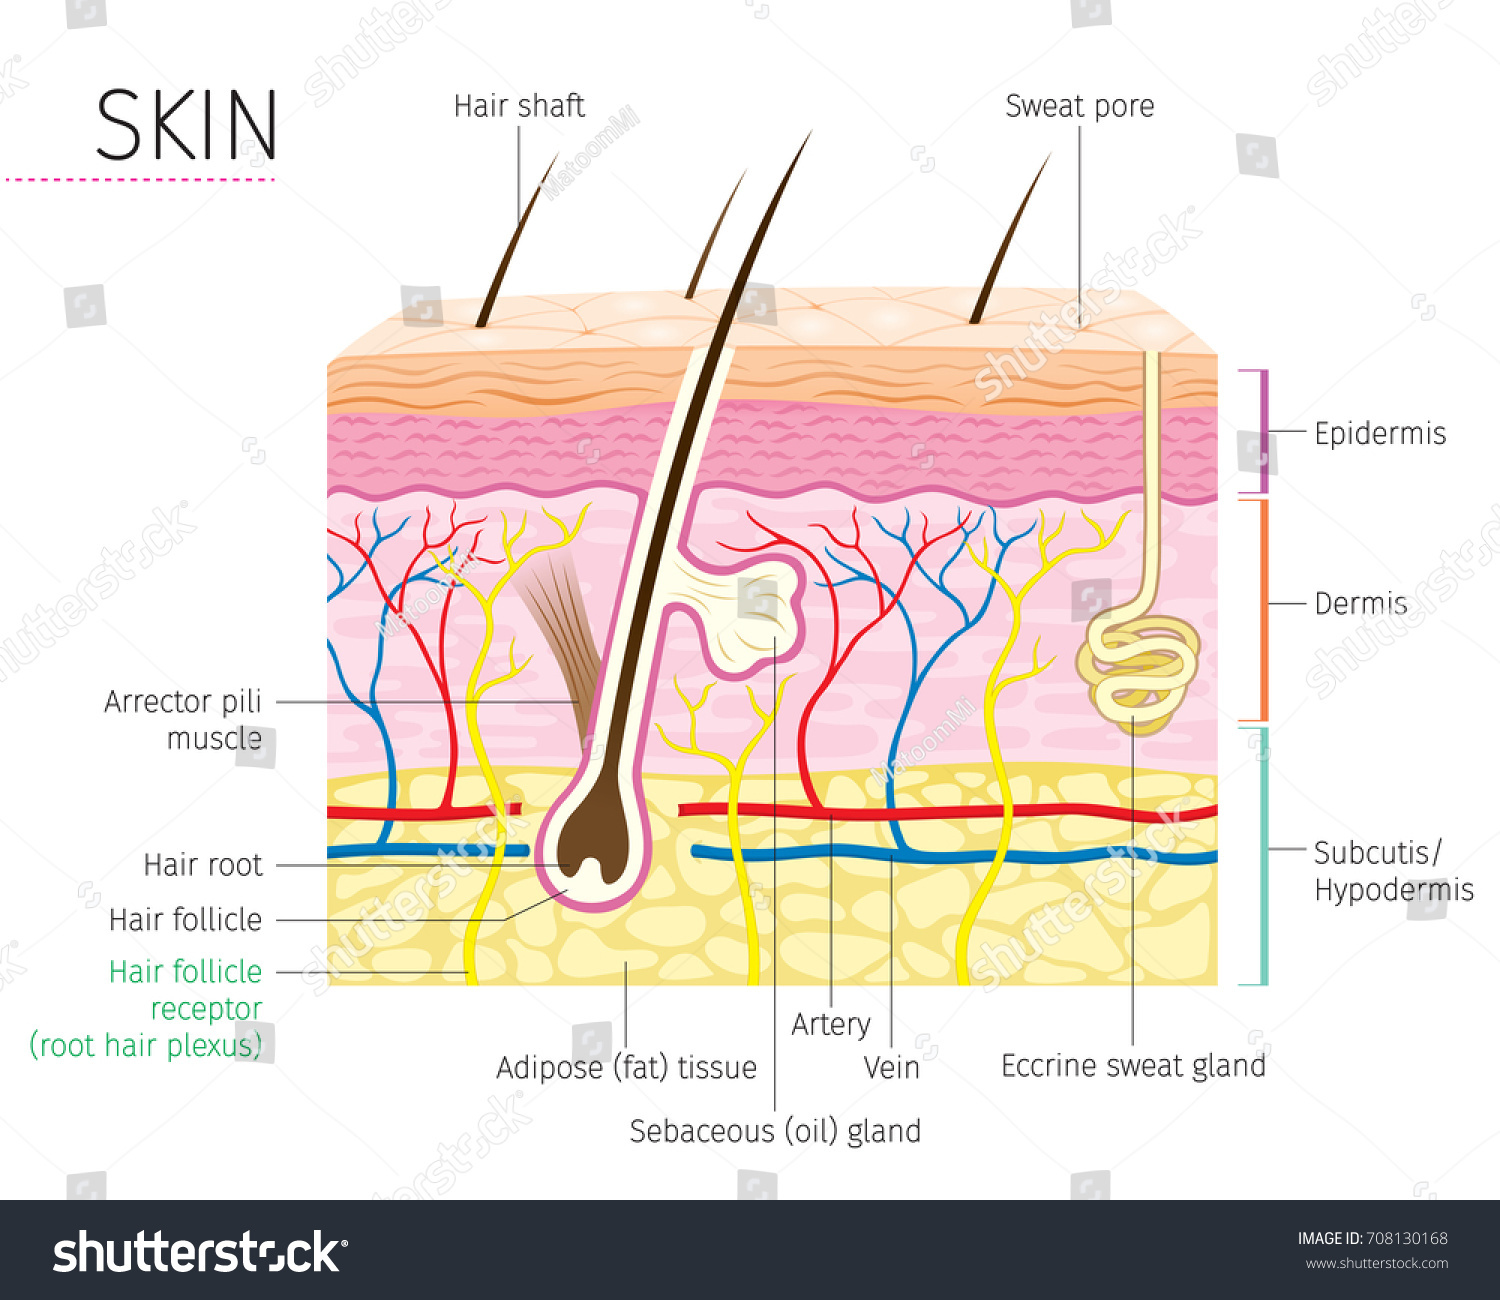 Human Anatomy Skin Hair Diagram Complexion Stock Vector 708130168 ...